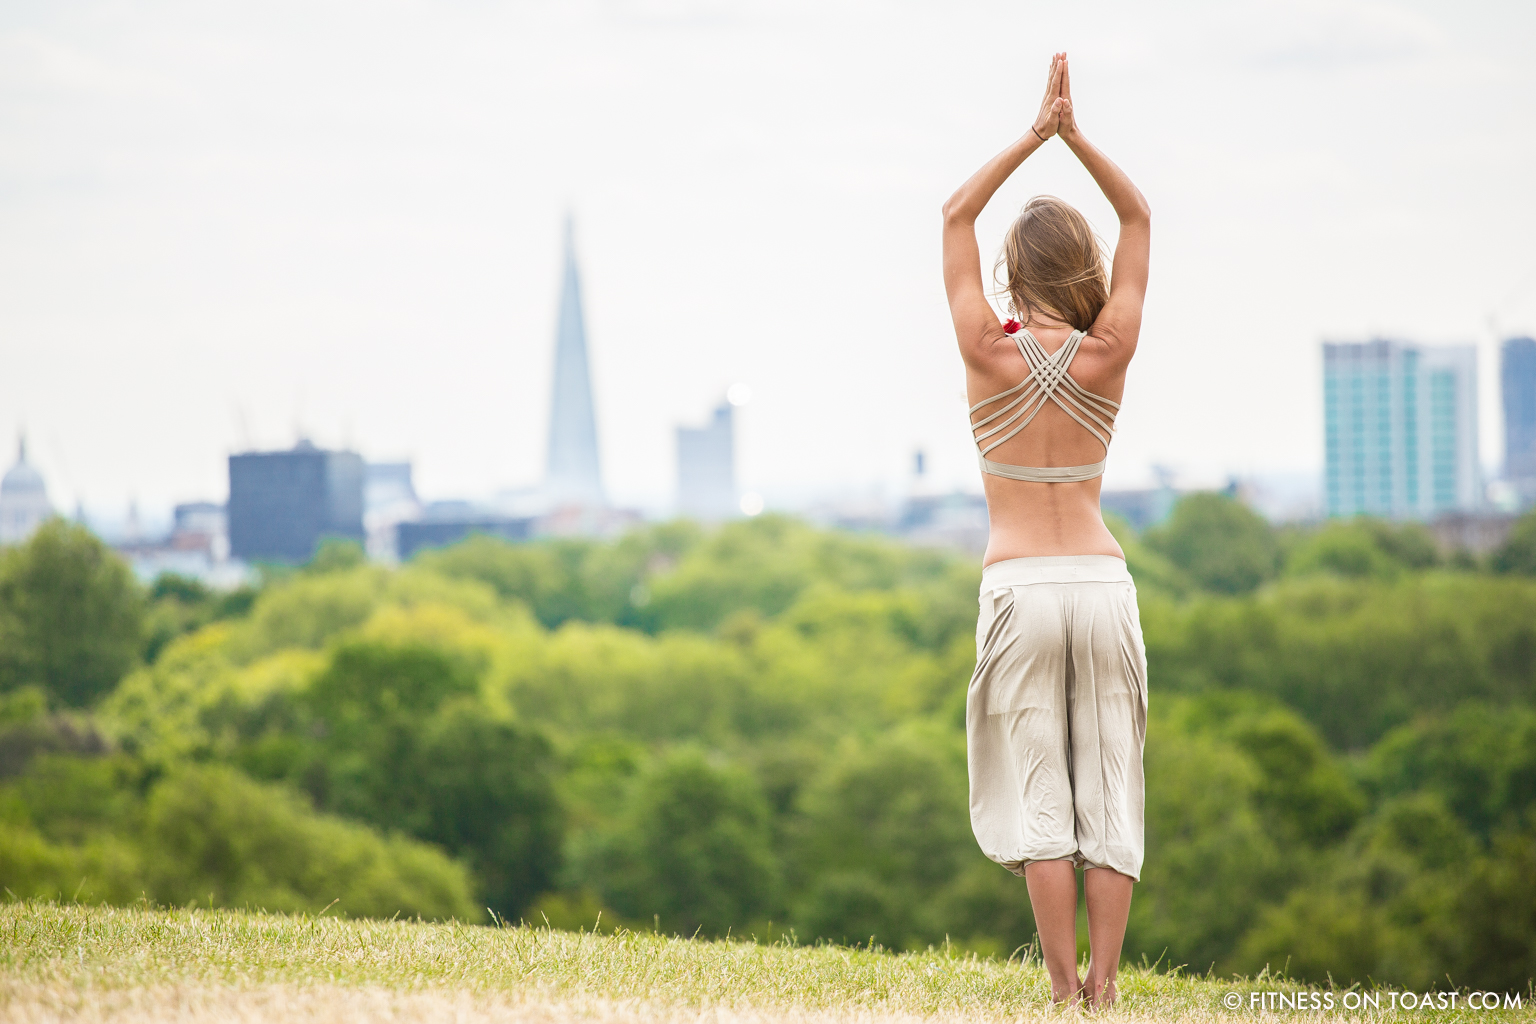 Fitness On Toast Faya Blog Girl Healthy Workout Yoga Lifestyle Fashion OOTD House of Dharma Kayleigh Carrie Bali Clothes Bohemian Look Primrose Hill London-7